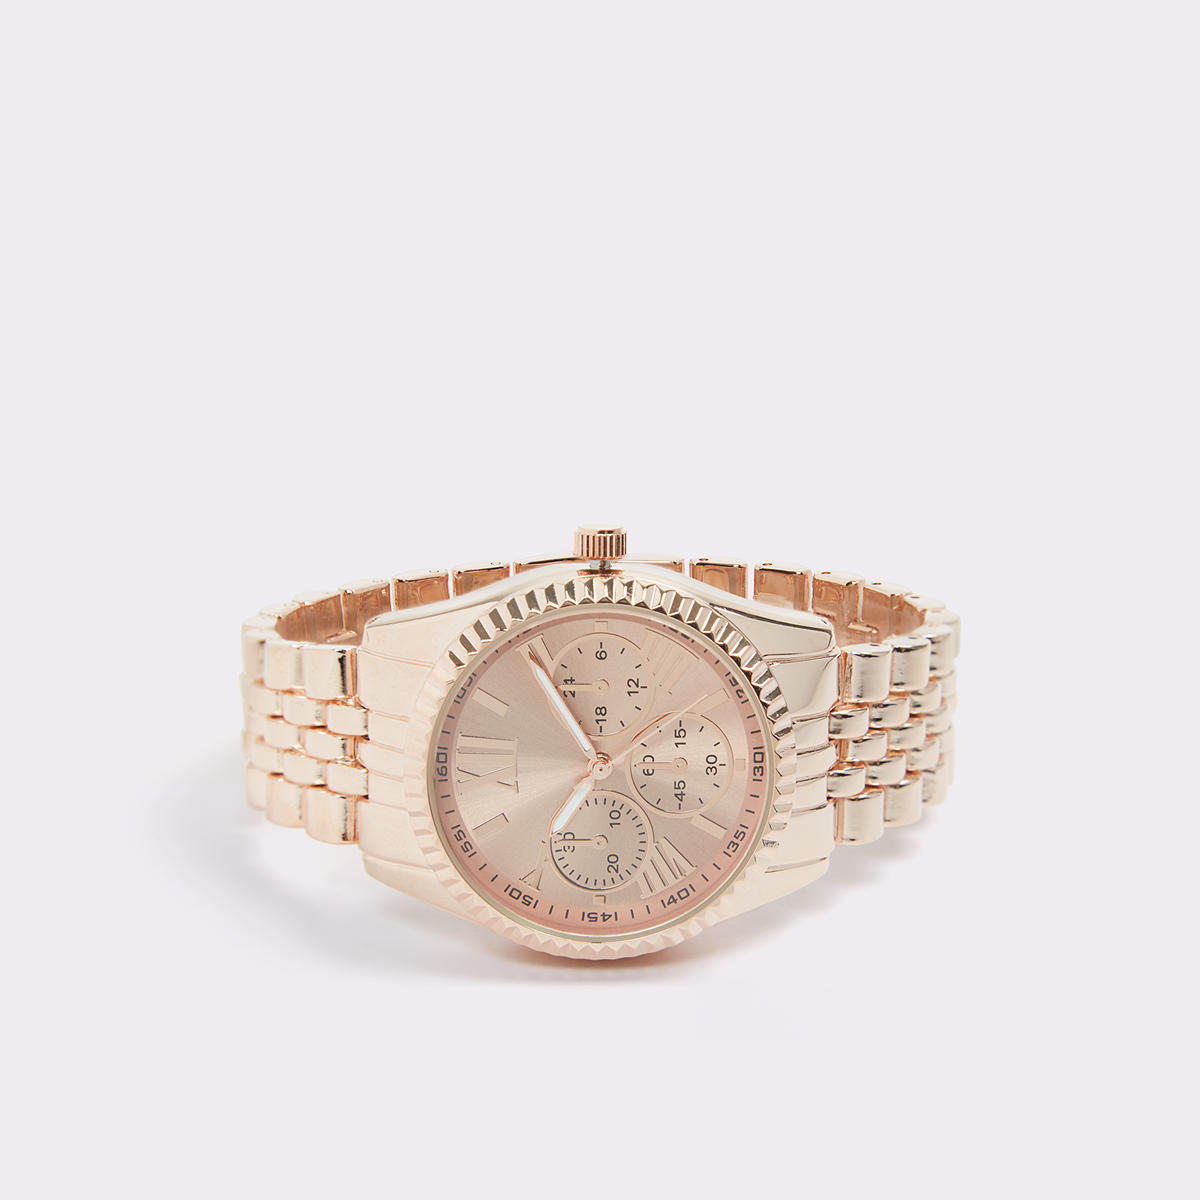 Falotoum Pink Misc. Women's Watches | ALDO US at Aldo Shoes in Victor, NY | Tuggl